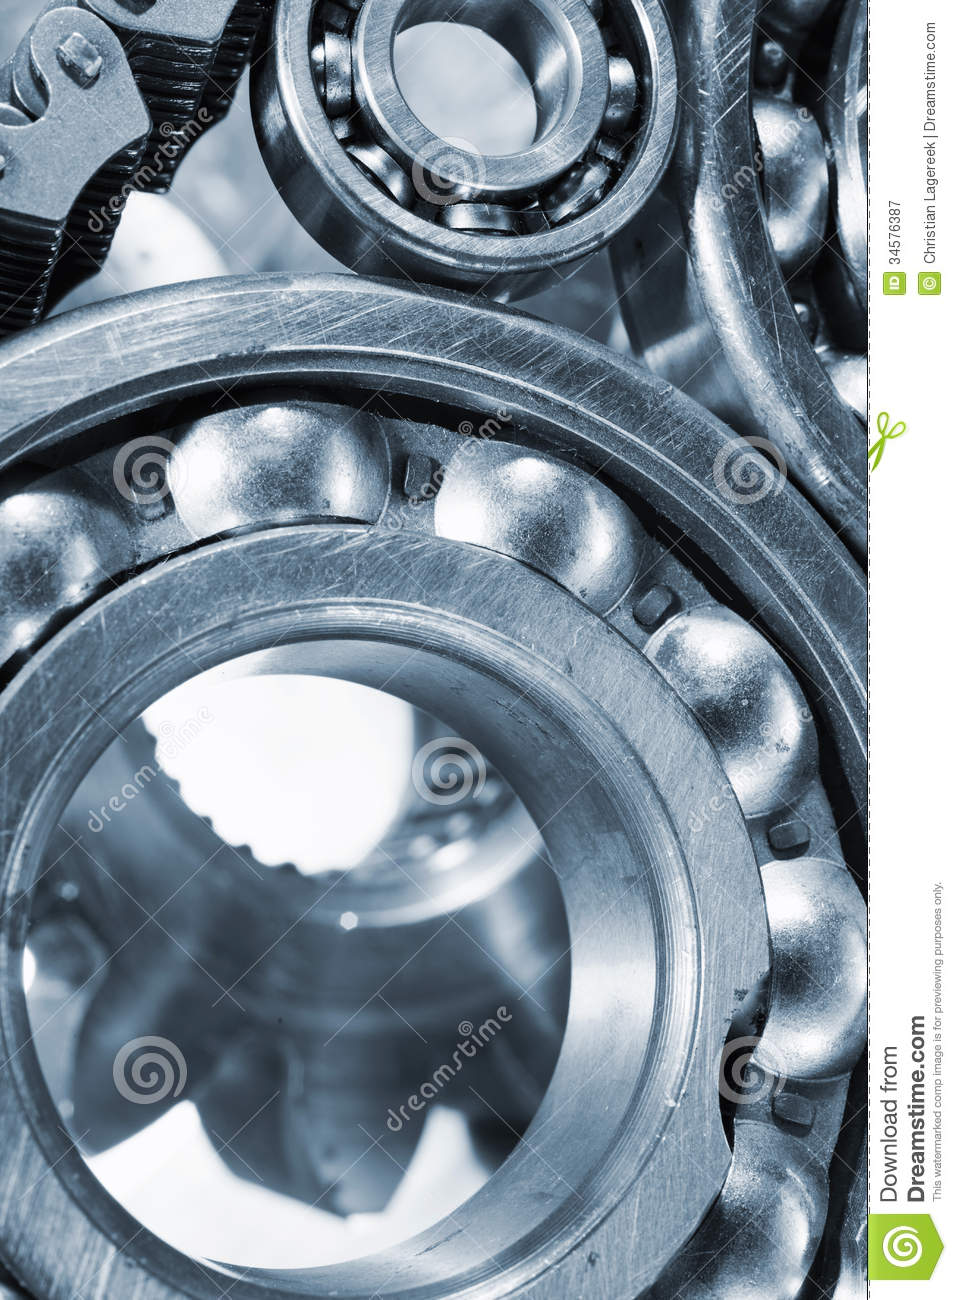 Ball-bearings and gears in close-ups